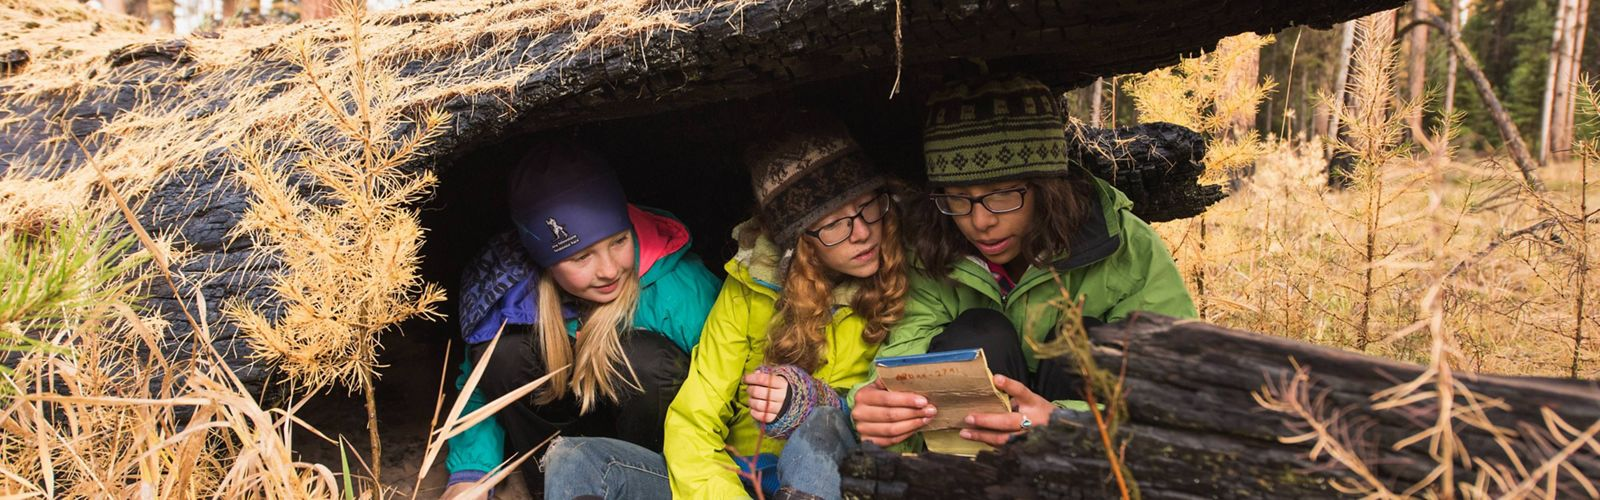 Kids reading in a hollow log